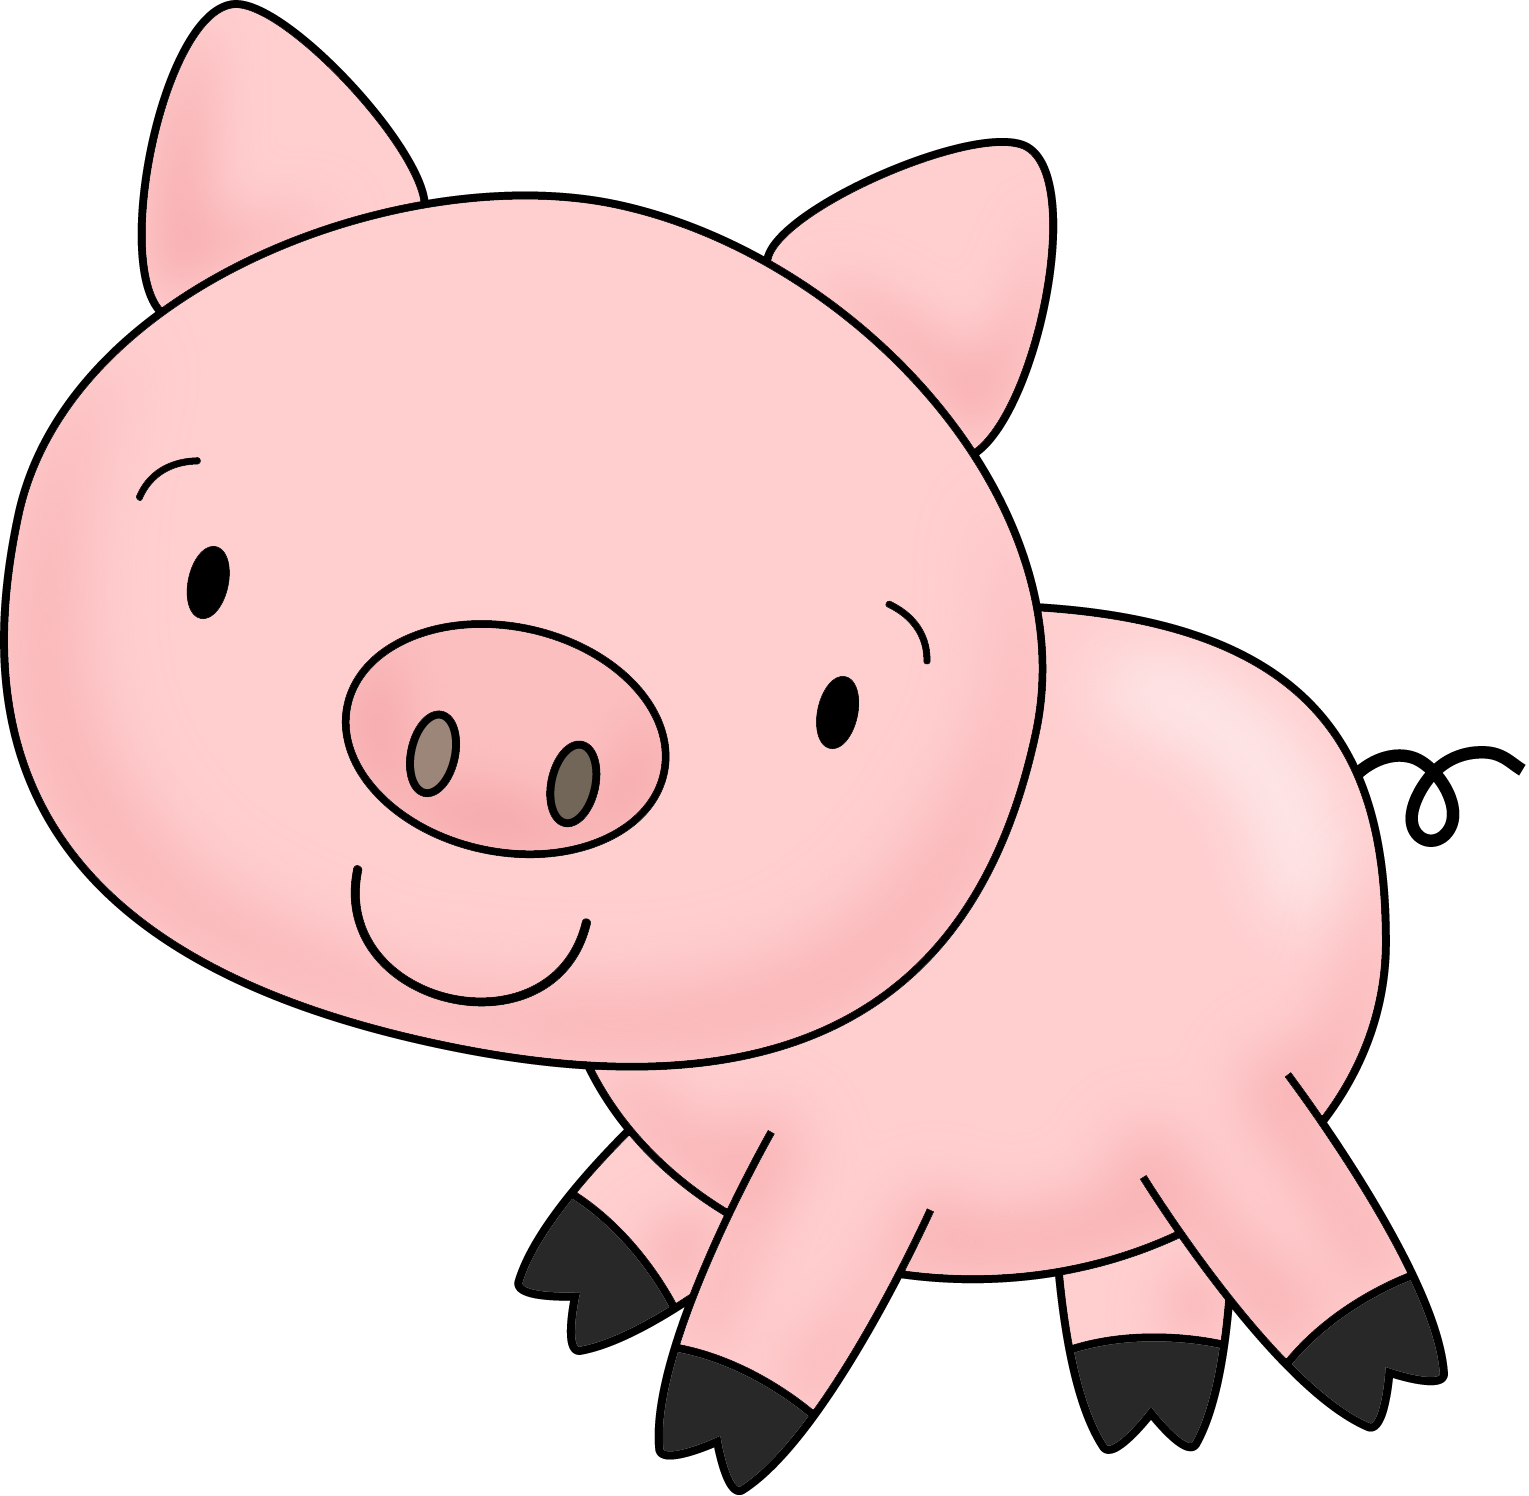 Png transparent images all. Pig clipart clear background